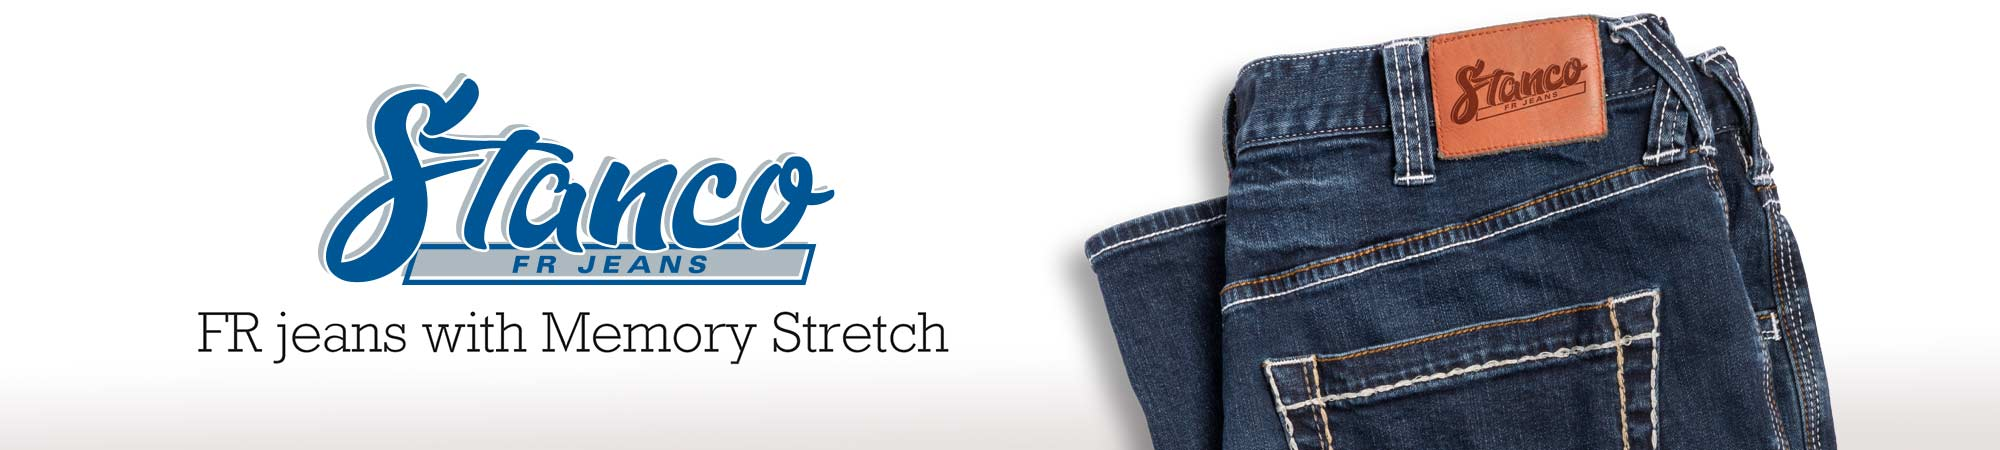 Stanco FR Jeans with Memory Stretch.